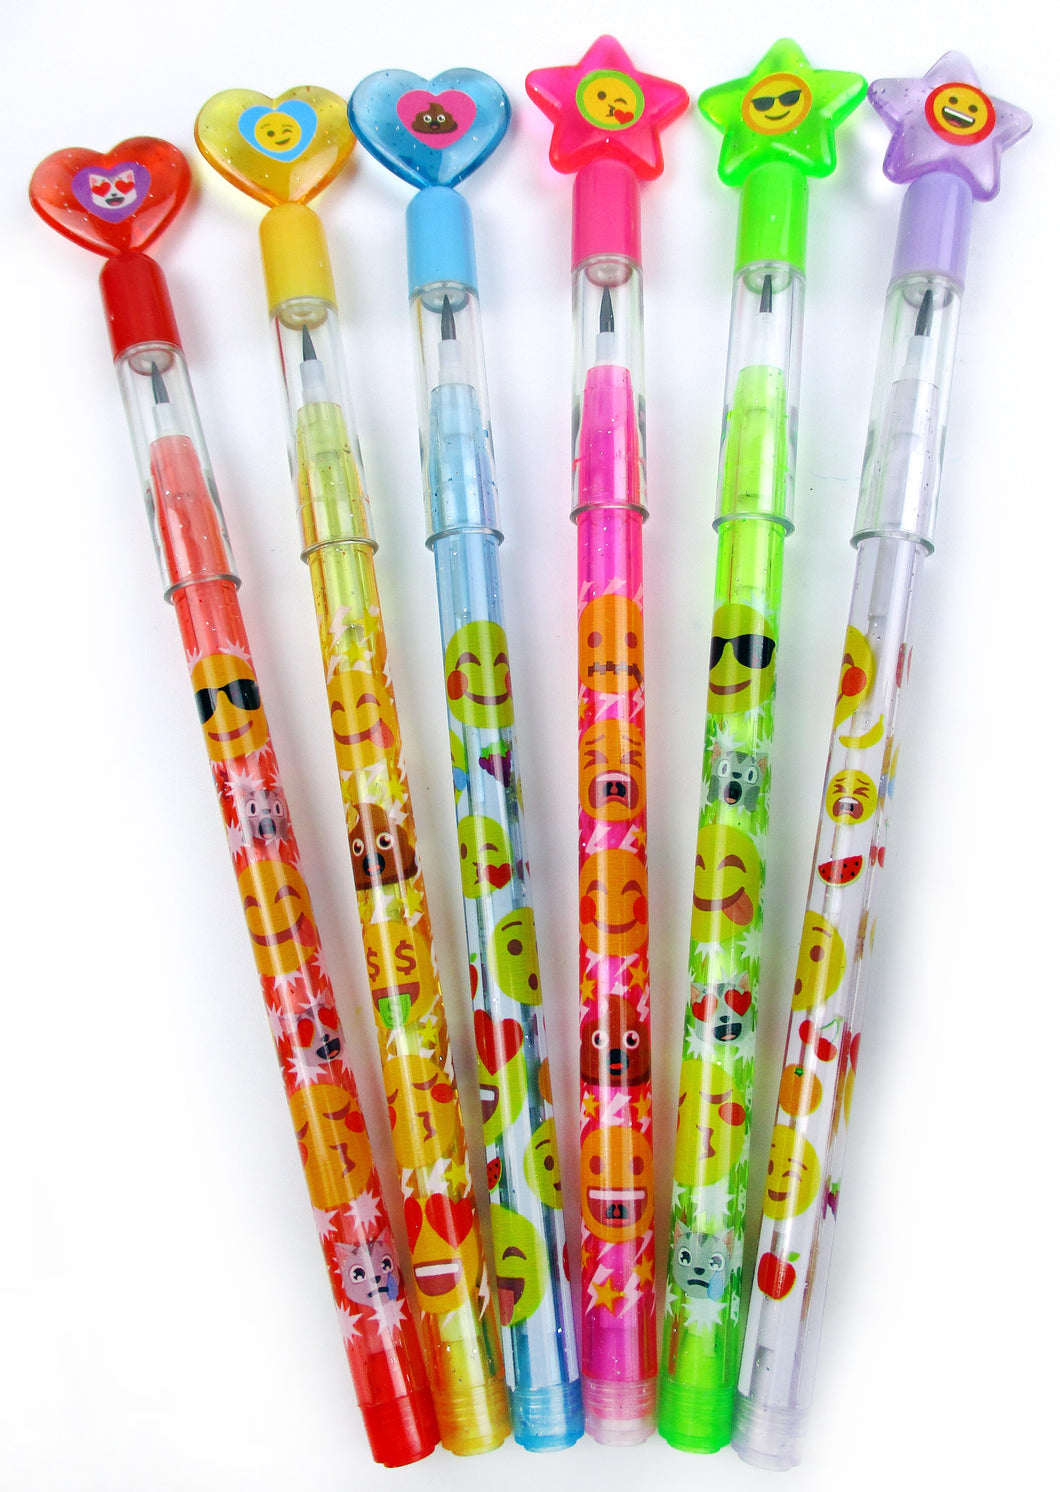 Emoji Multi Point Pencils - 24 Pcs - Pencils | Tiny Mills®